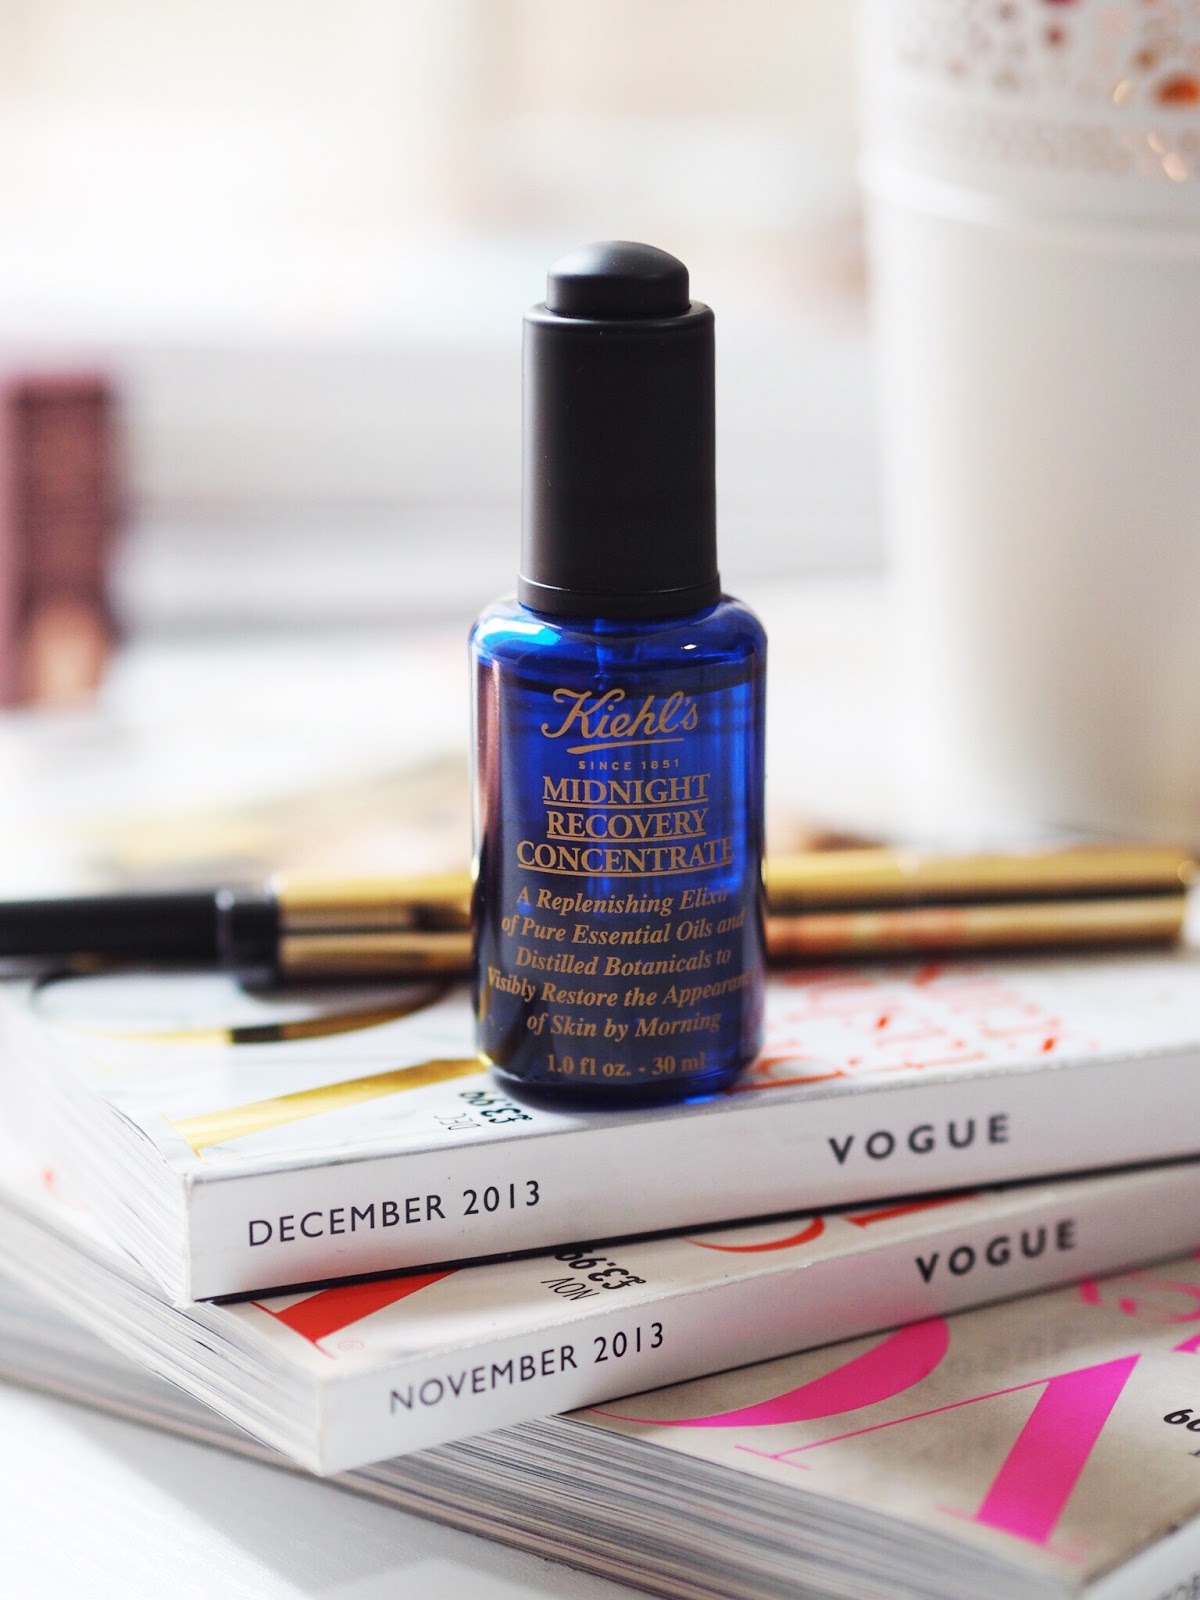 kiehl's midnight recovery concentrate review kiehl's bloggers skincare